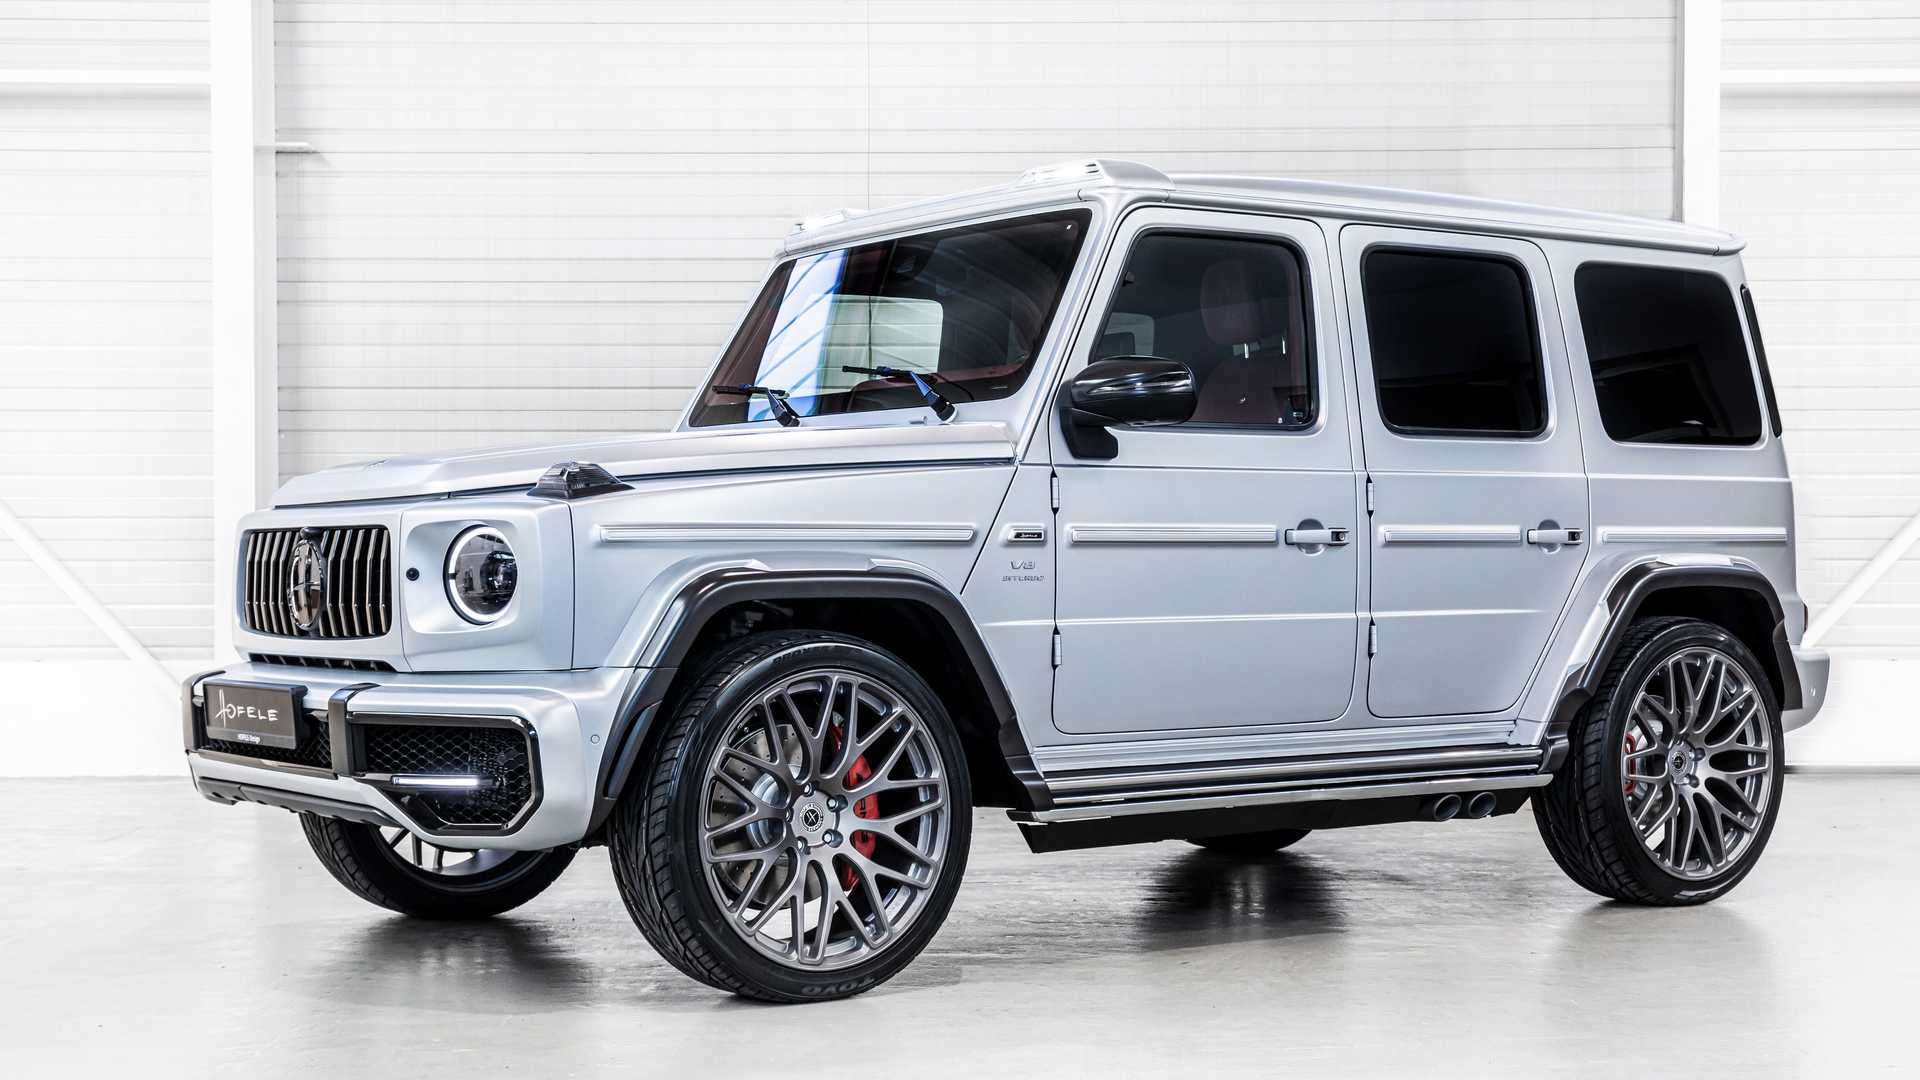 Mercedes-AMG G63 HG 63 Sport By Hofele Front View